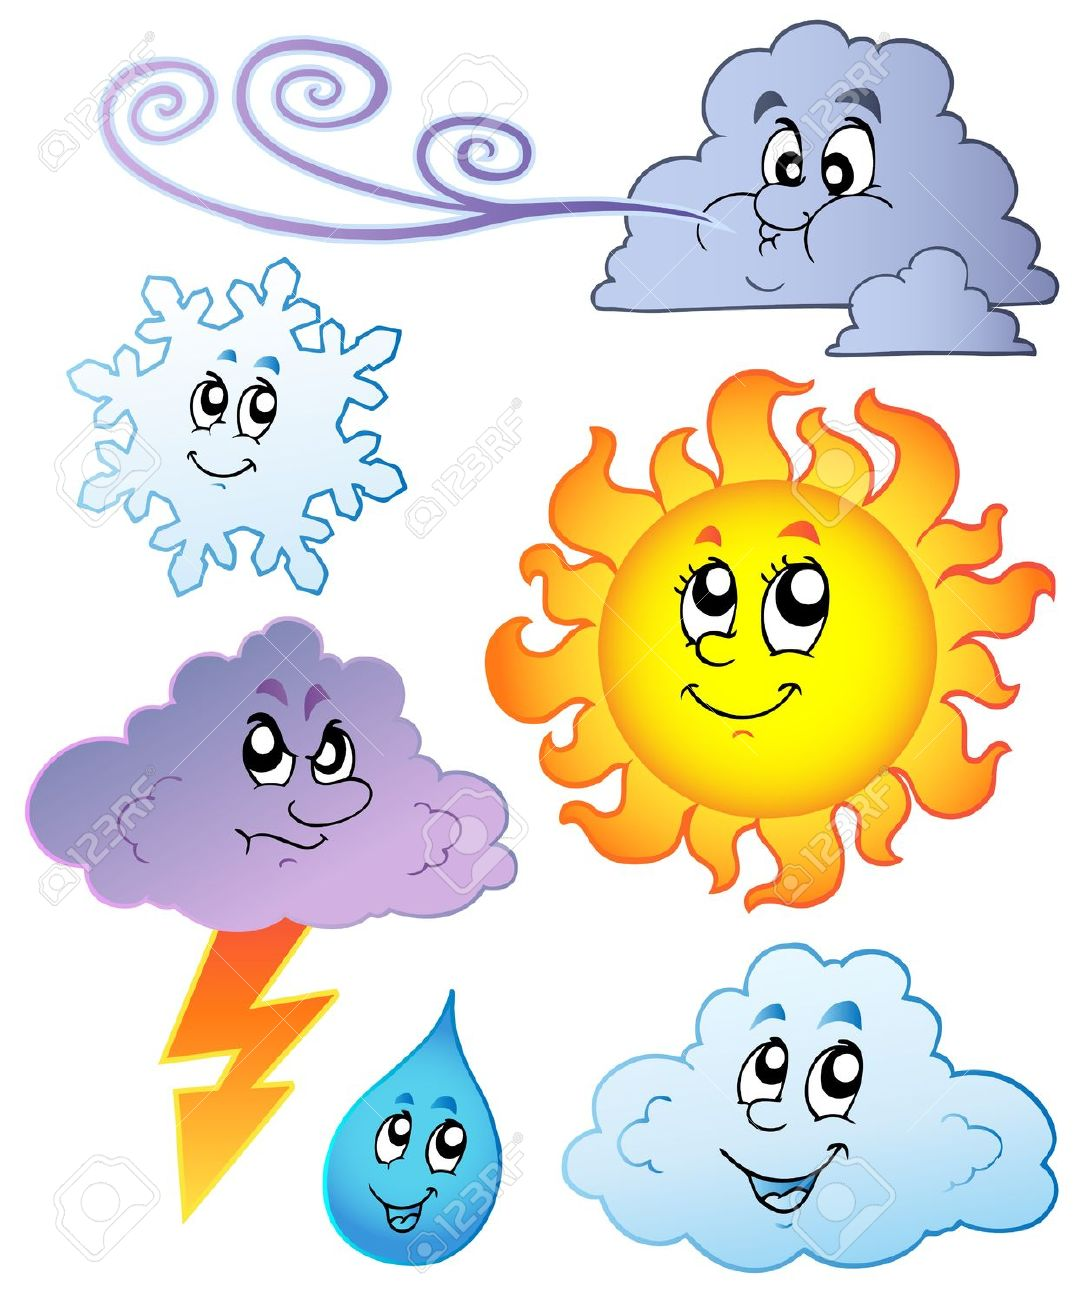 Weather Clipart Cartoon Weather Clipart -weather clipart cartoon weather clipart #1-13